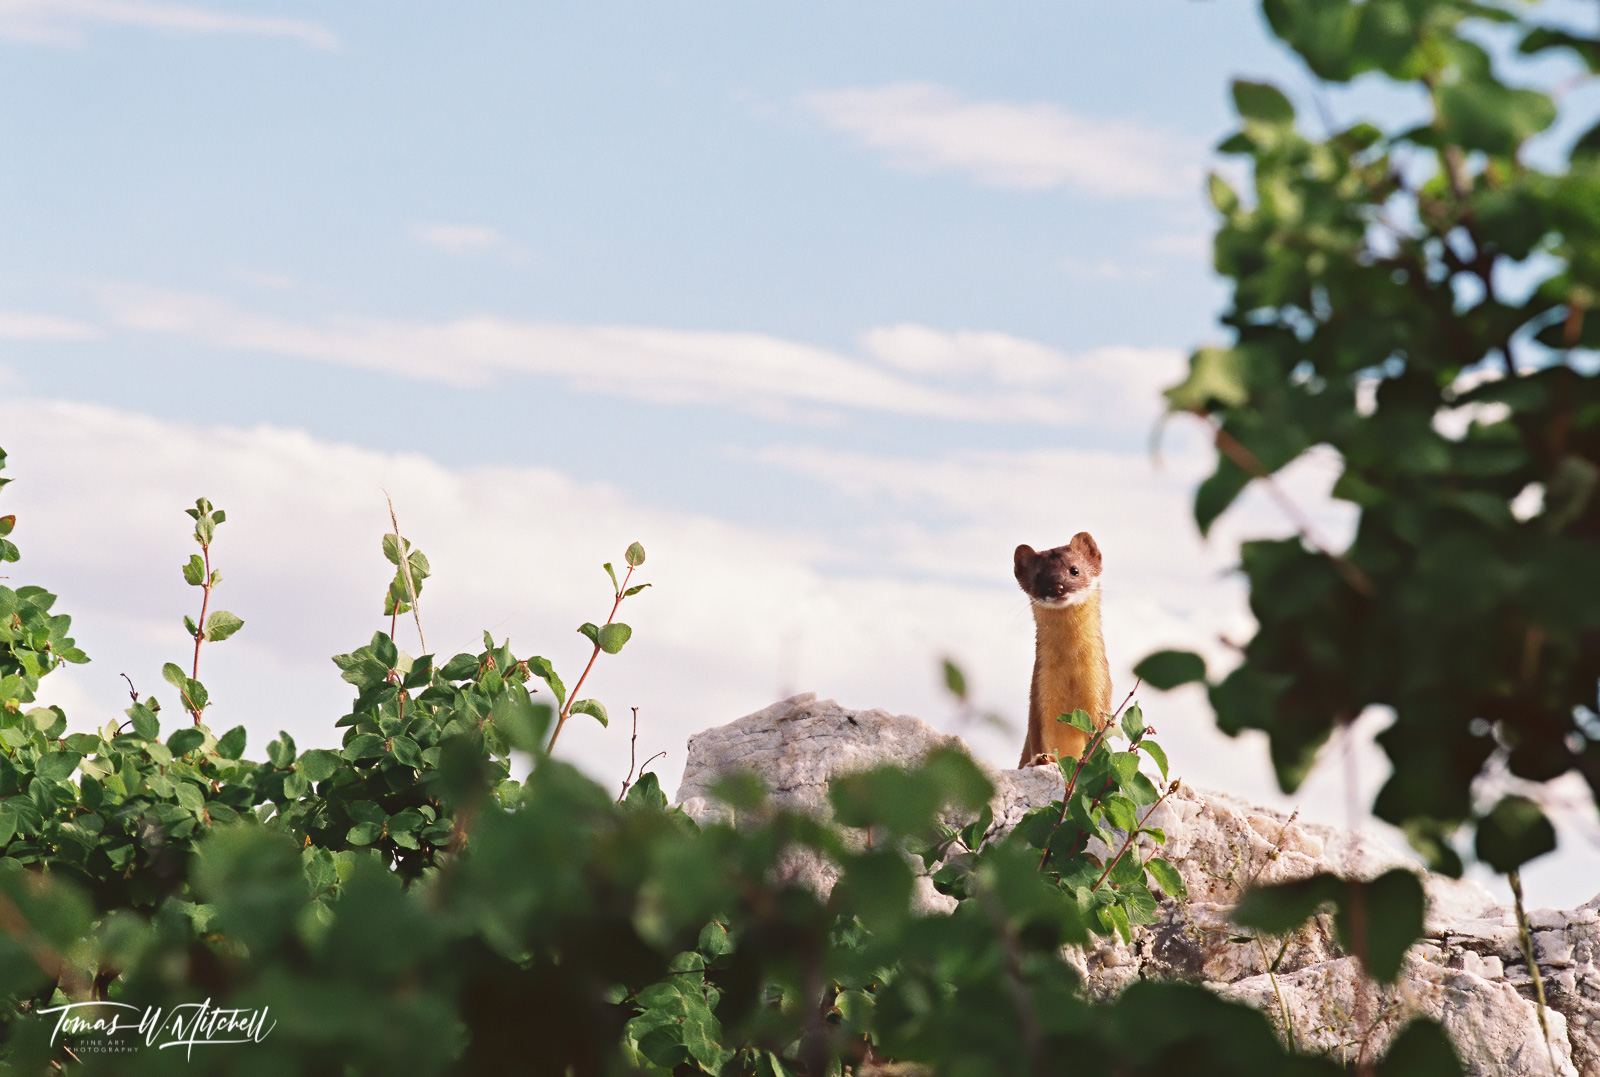 limited edition, fine art, prints, photograph wasatch mountains, utah ermine, film, sky, green, vegetation, wildlife, photo